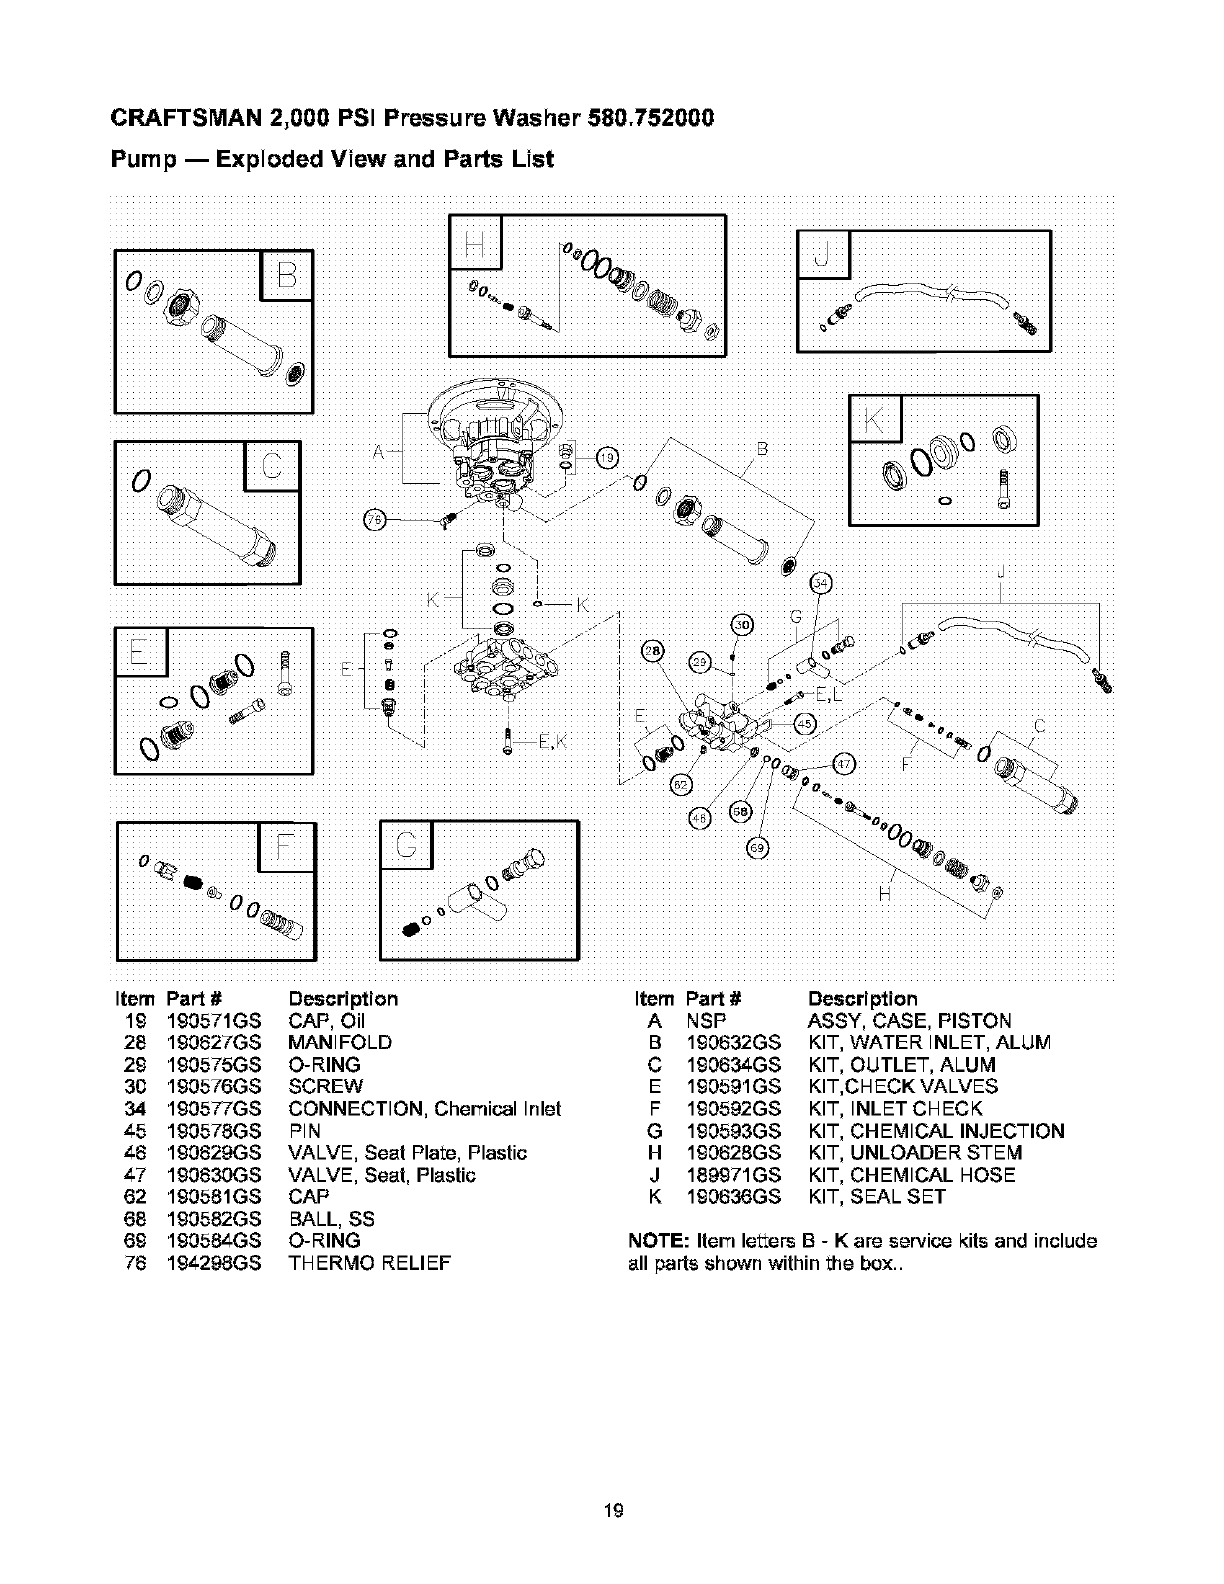 [ZHKZ_3066]  Page 19 of Craftsman Pressure Washer 580.752 User Guide   ManualsOnline.com   Wiring Diagram For Craftsman Pressure Washer      Lawn and Garden Manuals - ManualsOnline.com